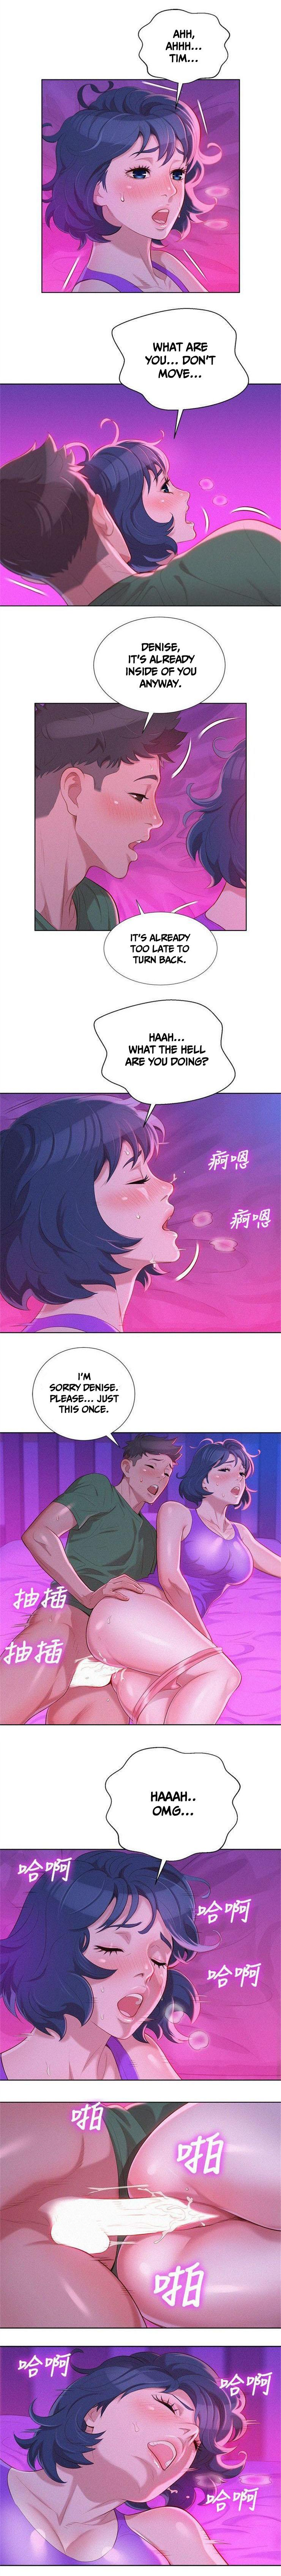 What do you Take me For? Ch.42/? 286